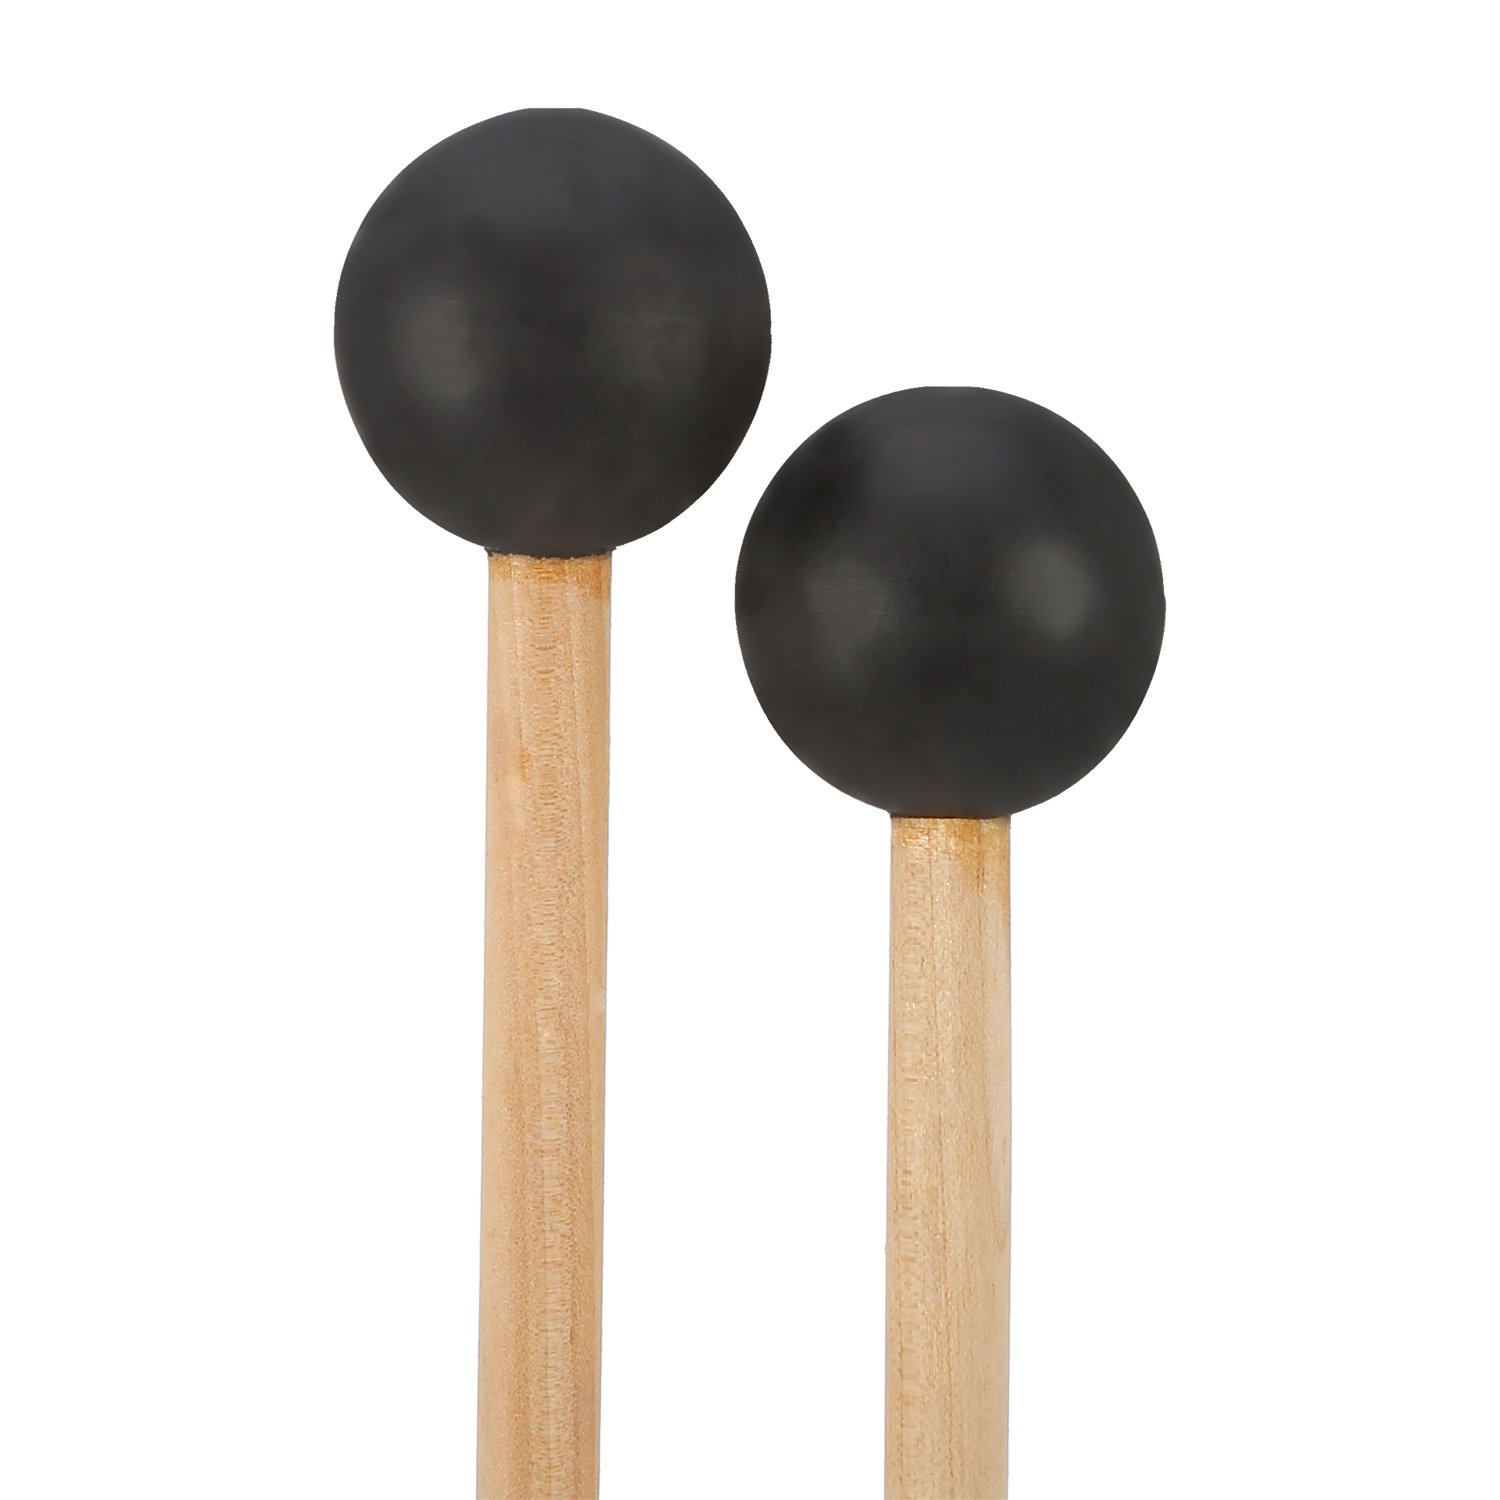 Shappy Bell Mallets Glockenspiel Sticks, Rubber Mallet Percussion with Wood Handle, 15 Inch Long (Black) Shappy-Bell Mallets-01